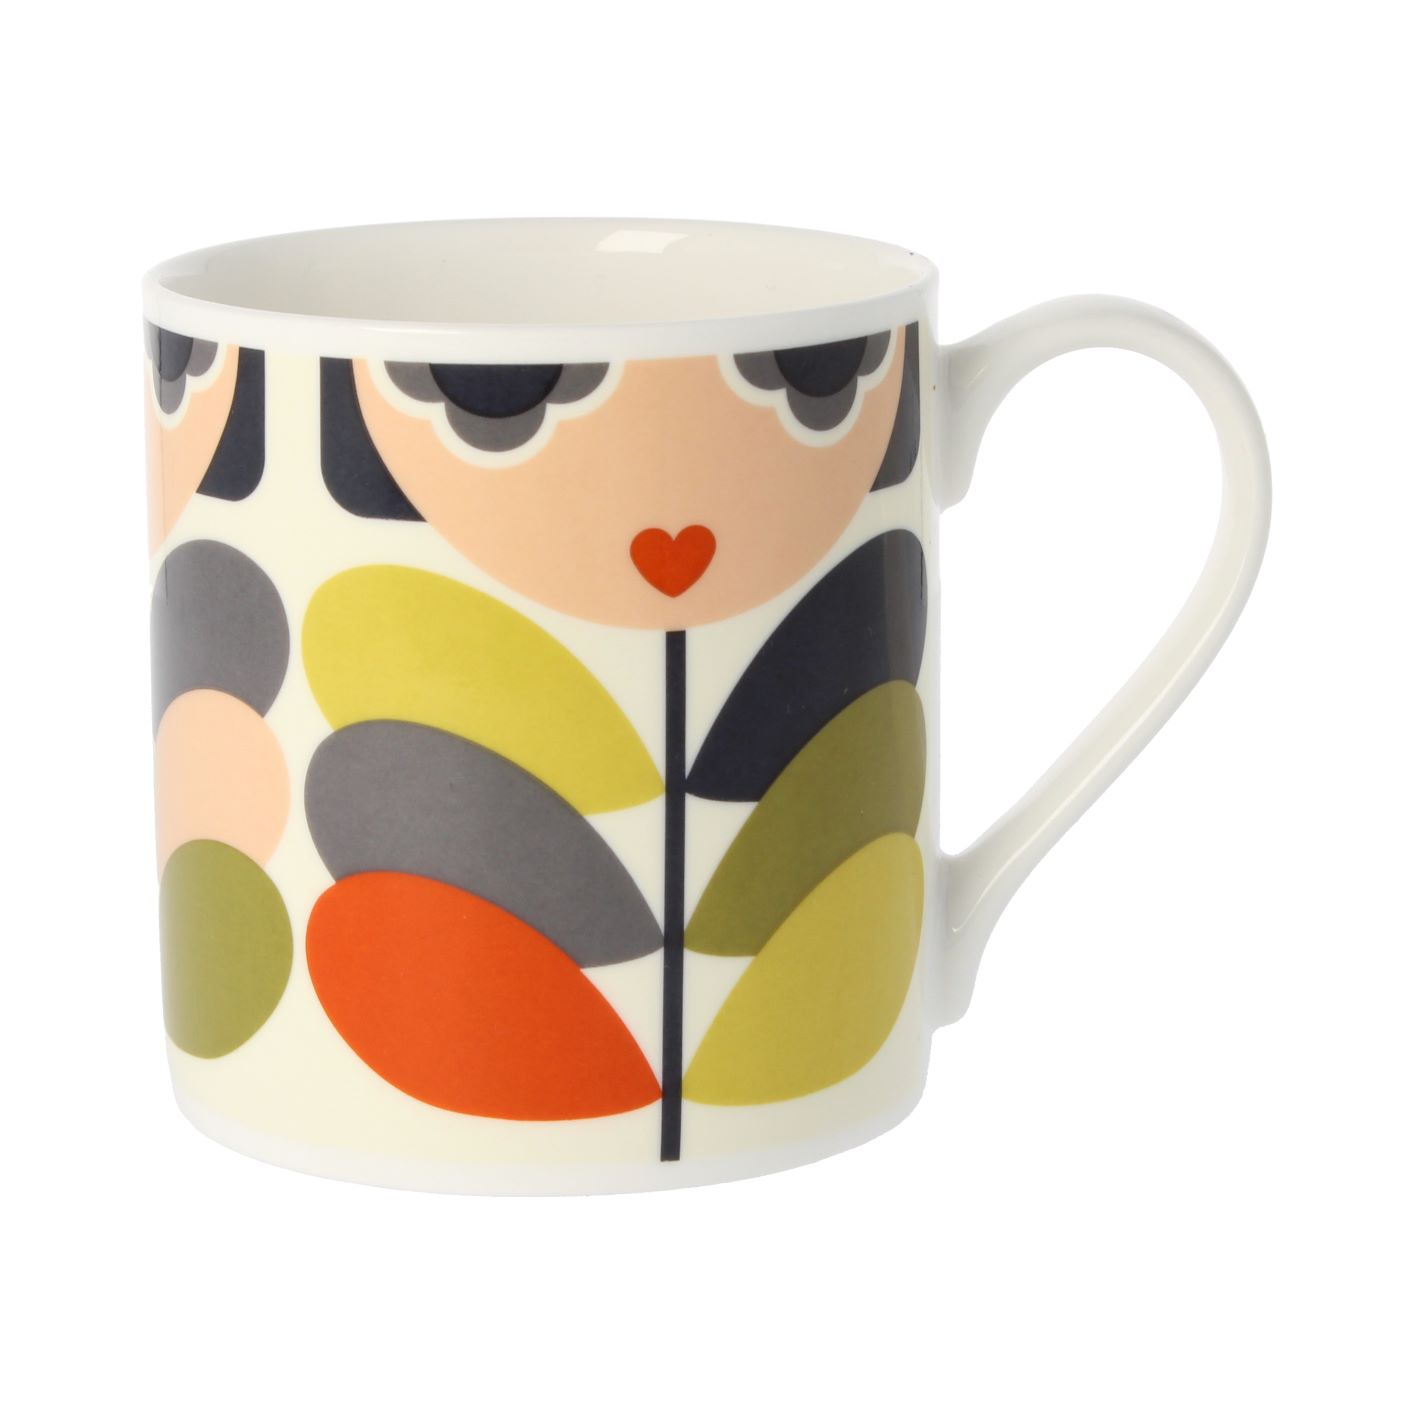 An example of an Orla Kiely mugs design, with a lady and leaves.